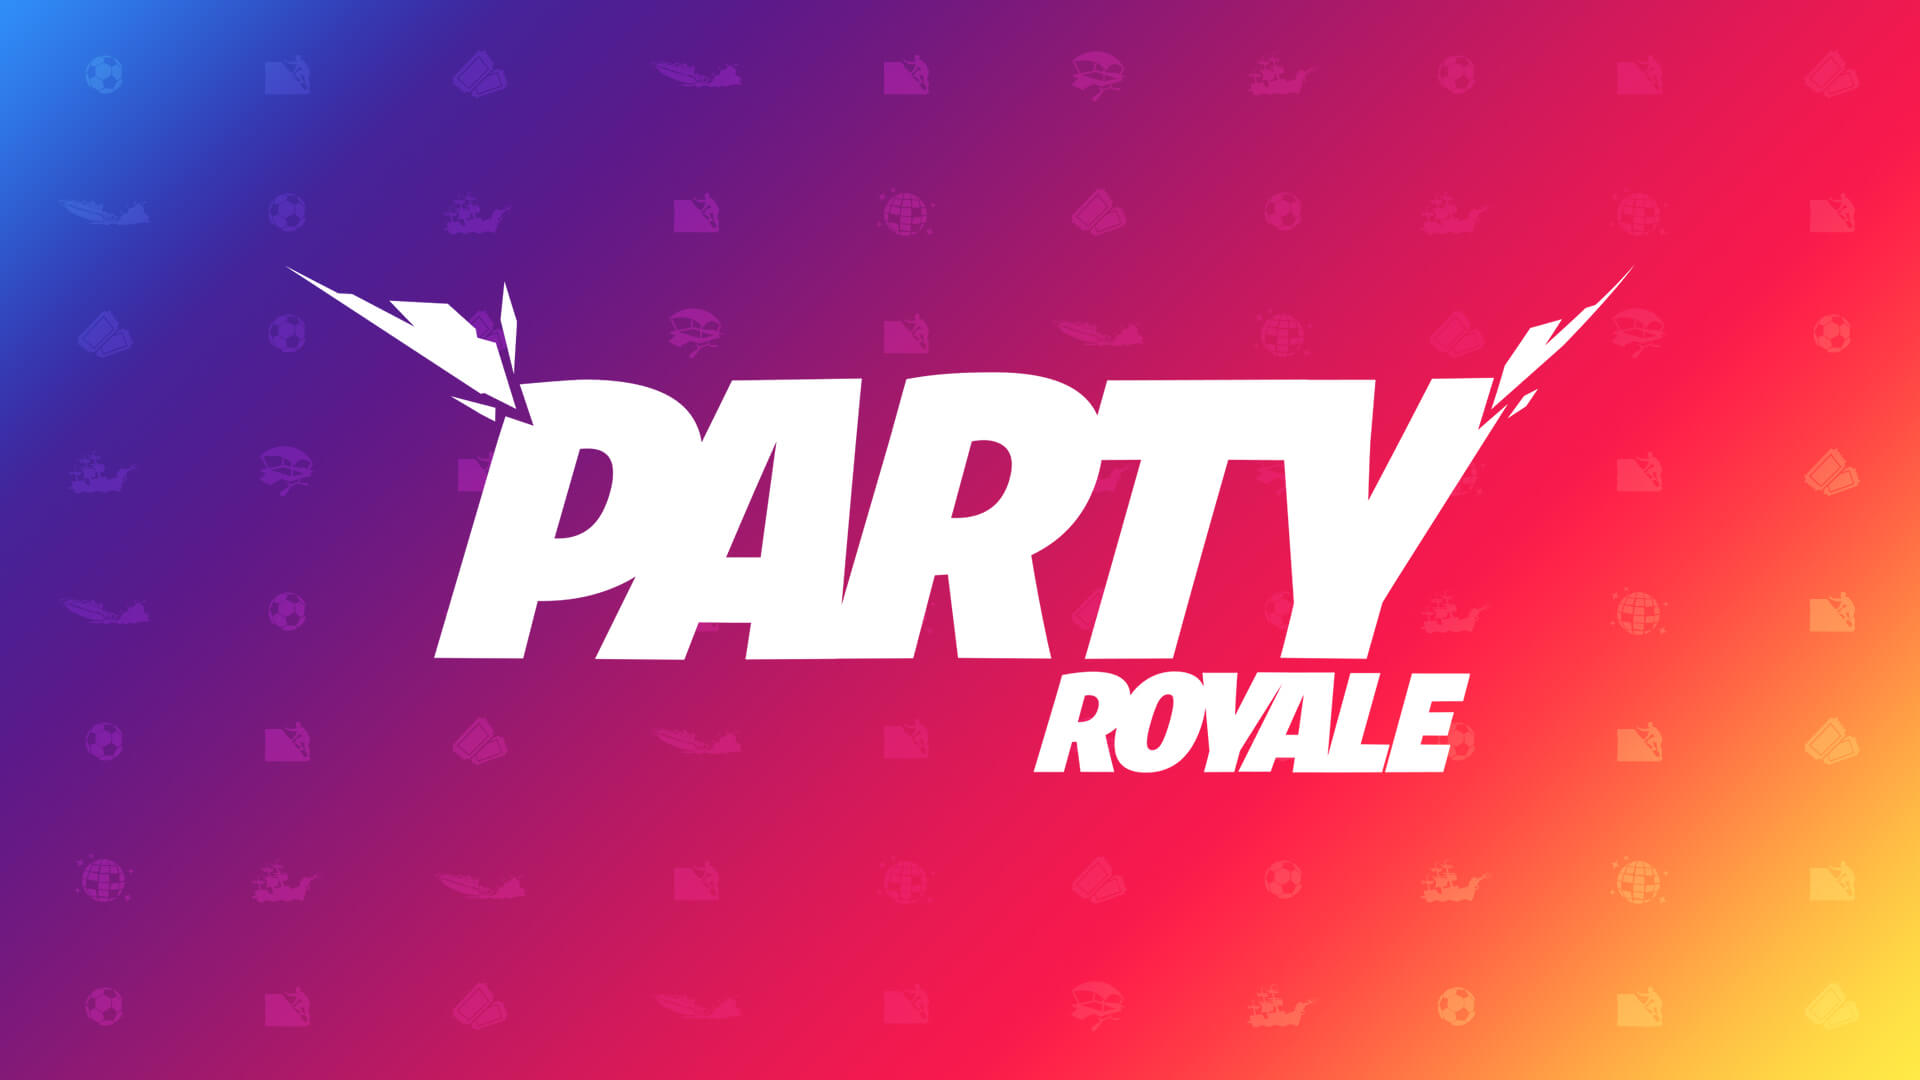 Dillon Francis Steve Aoki And Deadmau5 Invite You To The Party Royale Premiere